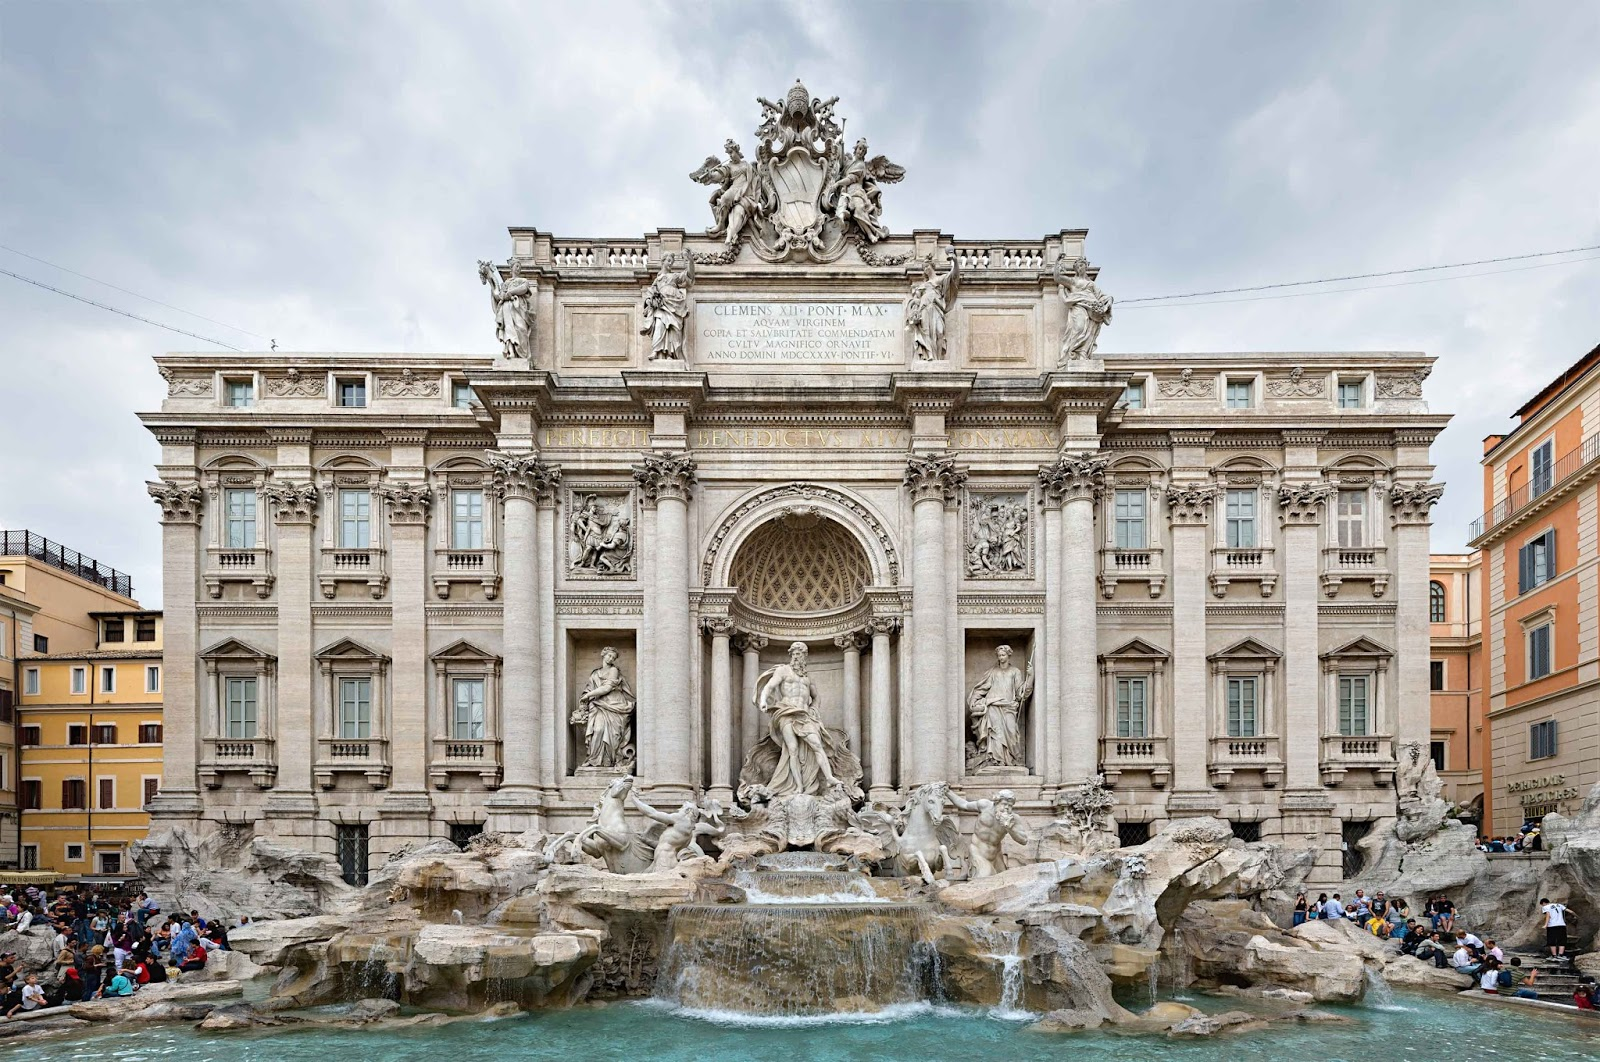 The Trevi Fountain - credit trevifountain.net